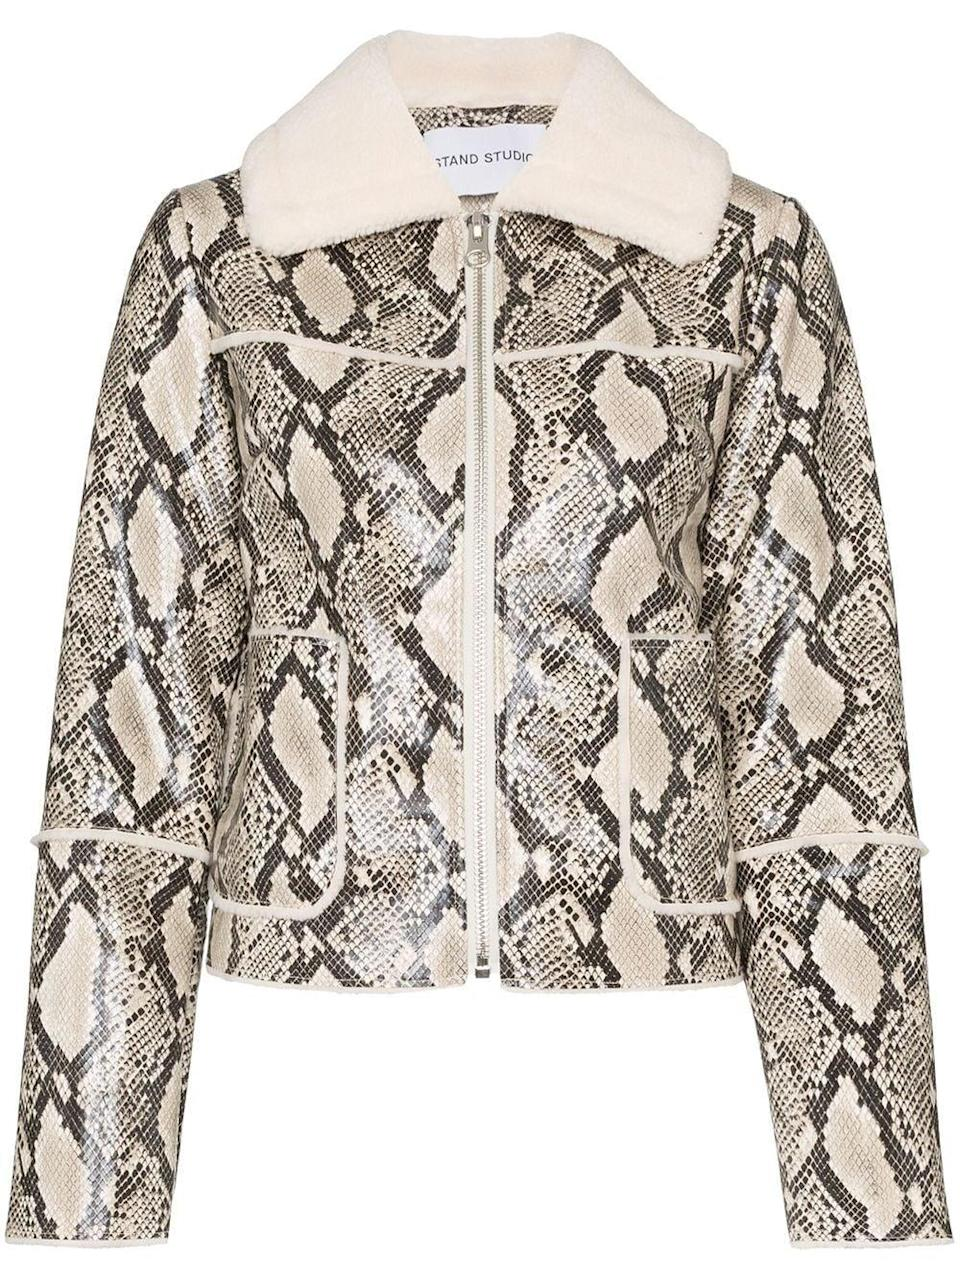 """<br><br><strong>Stand Studio</strong> Faux Shearling Jacket, $, available at <a href=""""https://www.farfetch.com/uk/shopping/women/stand-studio-maj-snake-print-faux-shearling-jacket-item-14635914.aspx?size=18&storeid=9359&clickref=1011lbPUeZrm&utm_source=shopstyleukmain&utm_medium=affiliate&utm_campaign=PHUK&utm_term=UKNetwork&pid=performancehorizon_int&c=shopstyleukmain&clickid=1011lbPUeZrm&af_siteid=1011l18163&af_sub_siteid=1011l271&af_cost_model=CPA&af_channel=affiliate&is_retargeting=true"""" rel=""""nofollow noopener"""" target=""""_blank"""" data-ylk=""""slk:Farfetch"""" class=""""link rapid-noclick-resp"""">Farfetch</a>"""